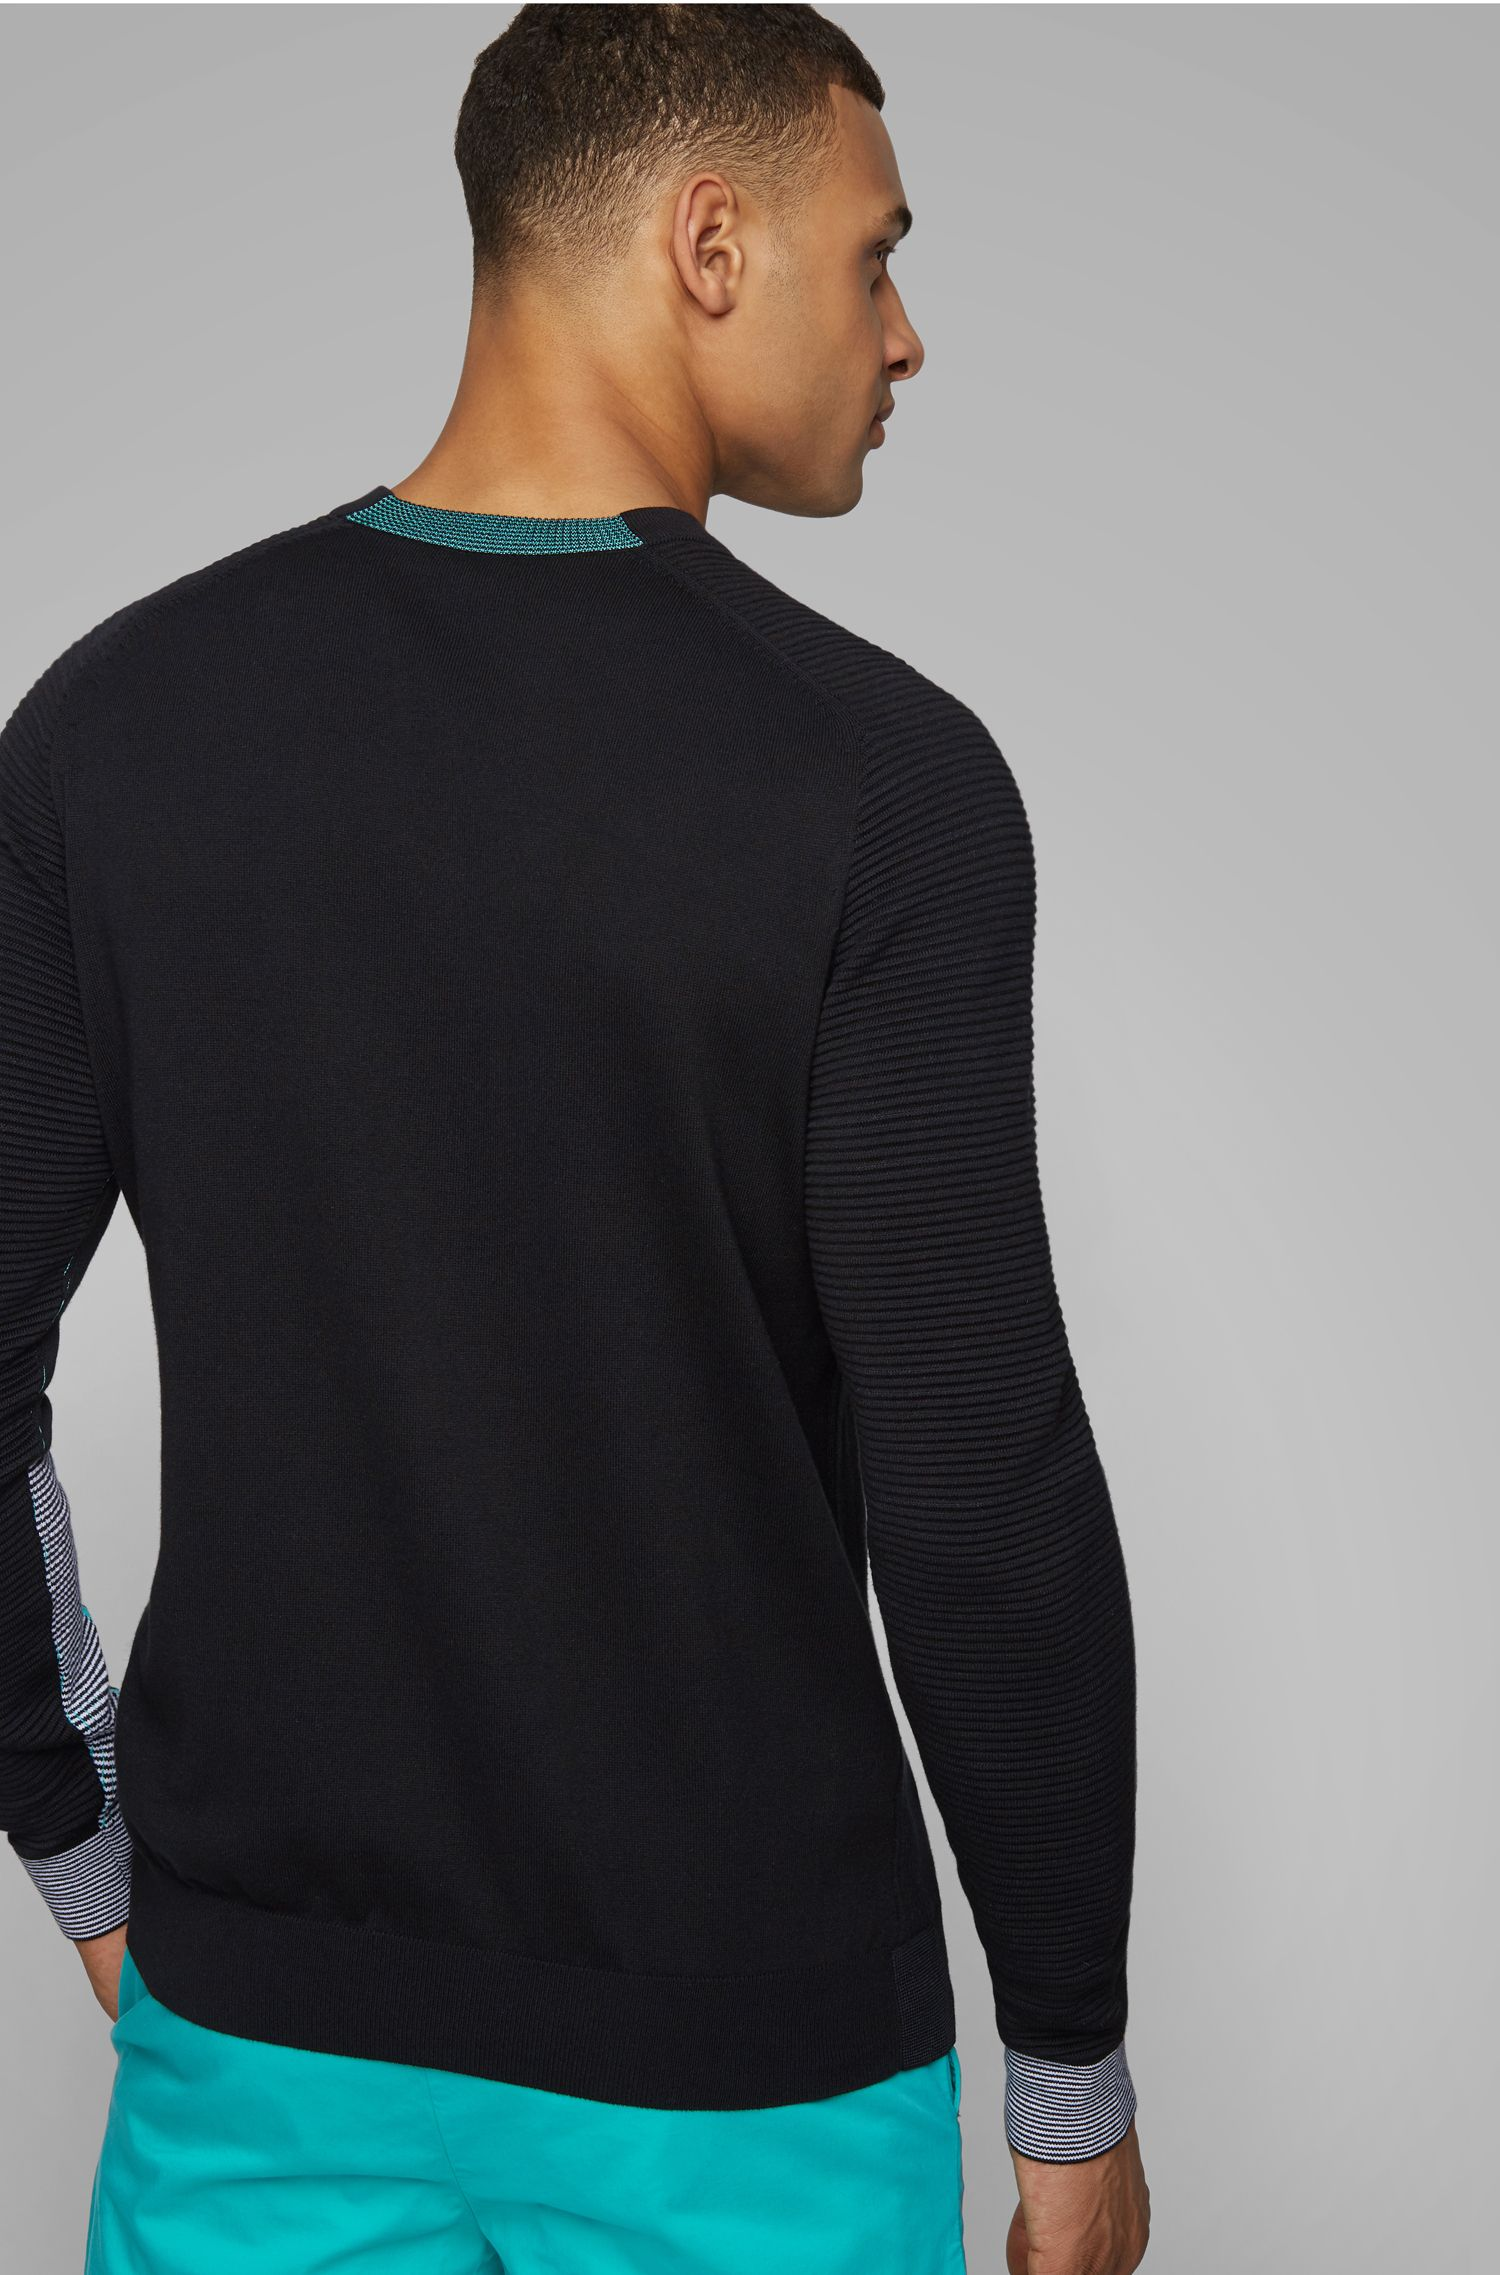 Knitted sweater in a cotton blend with tonal details, Black